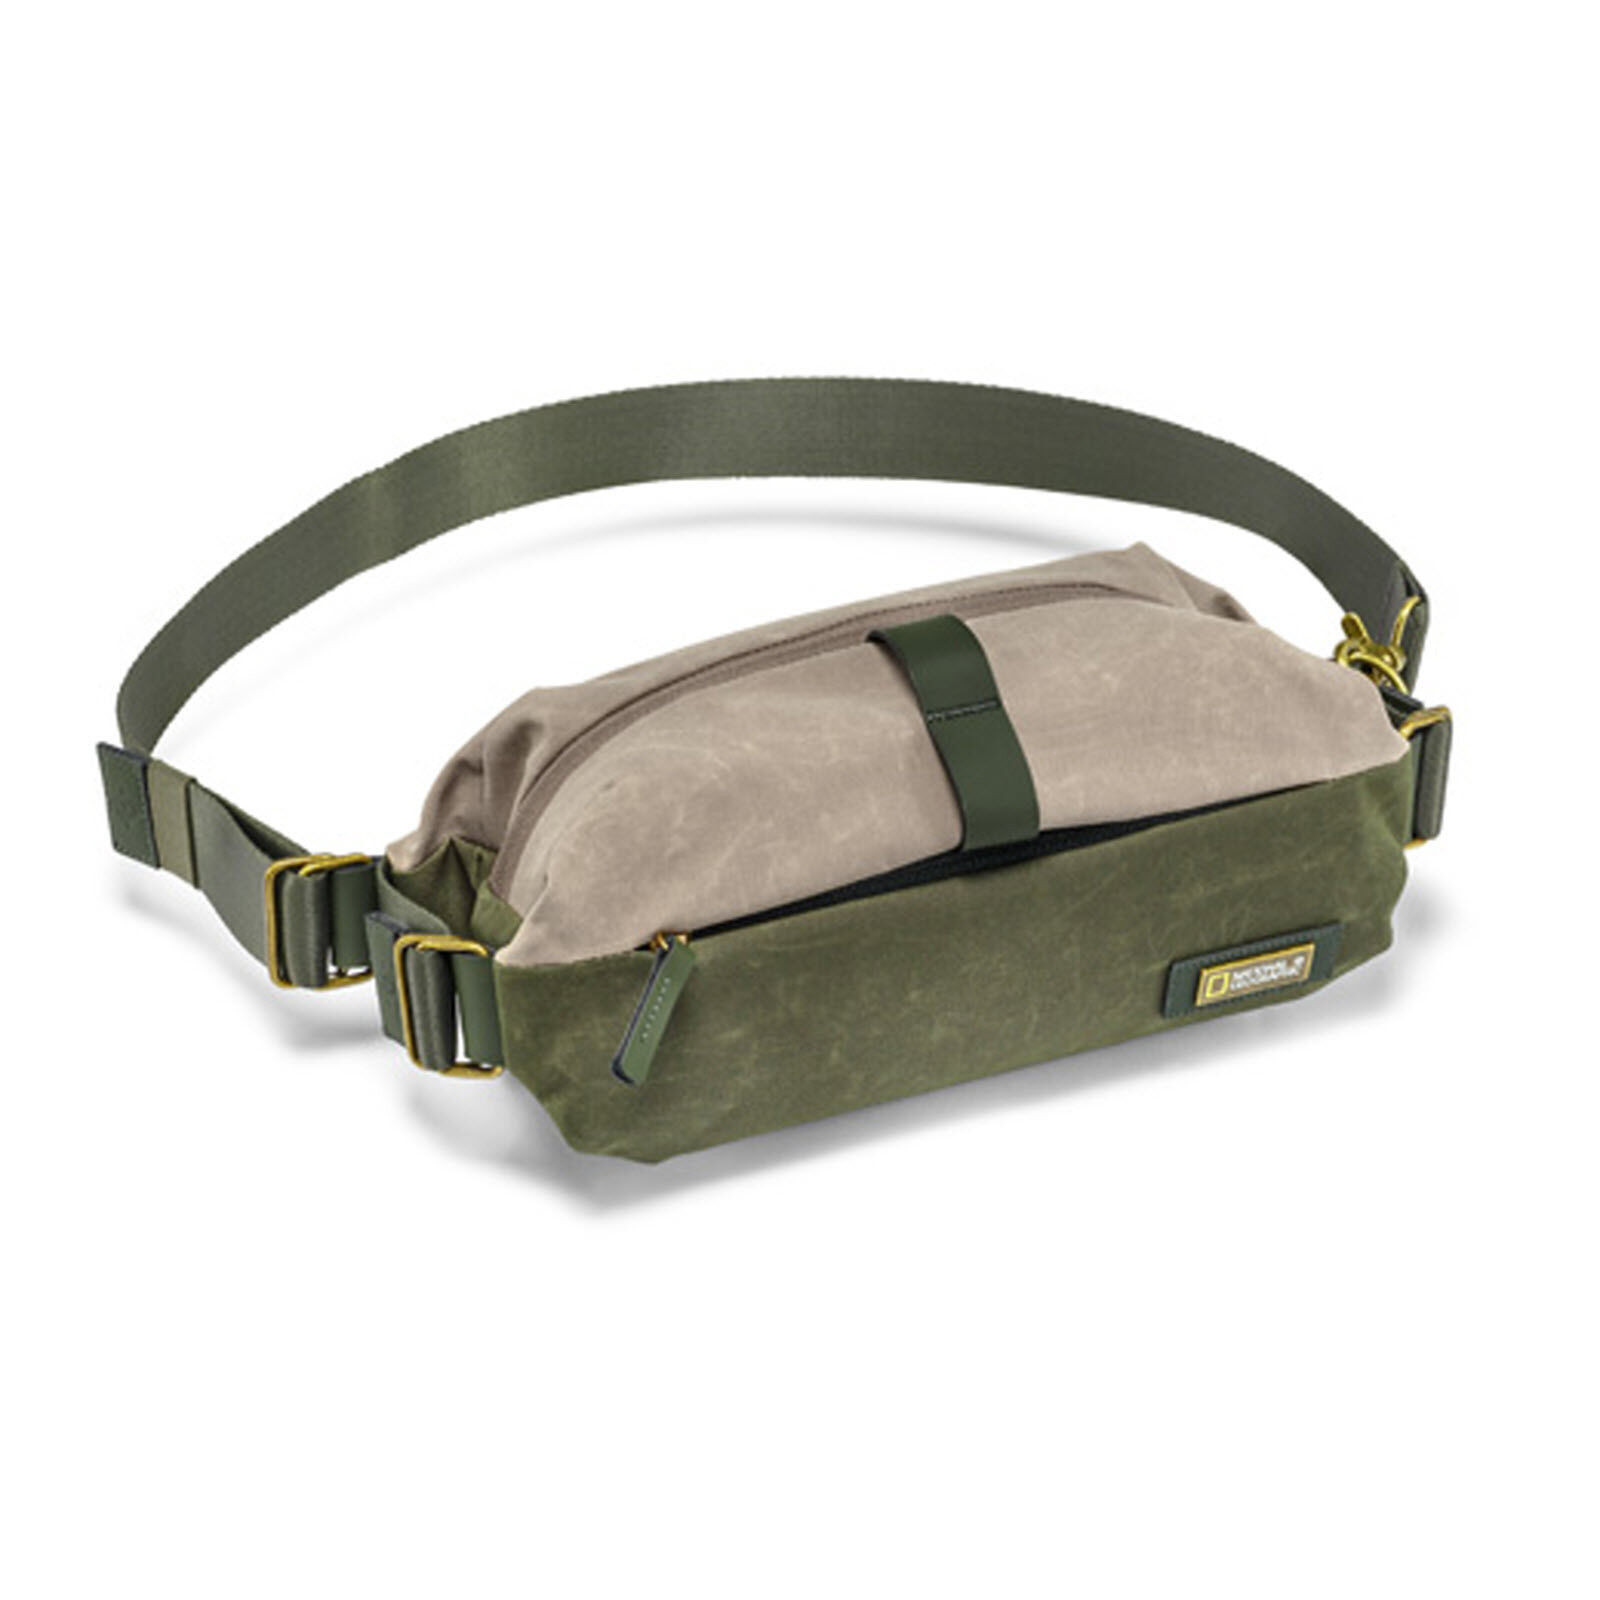 c2dc5c13be Details about National Geographic Rain Forest NG RF 4474 camera waist pack  for CSC